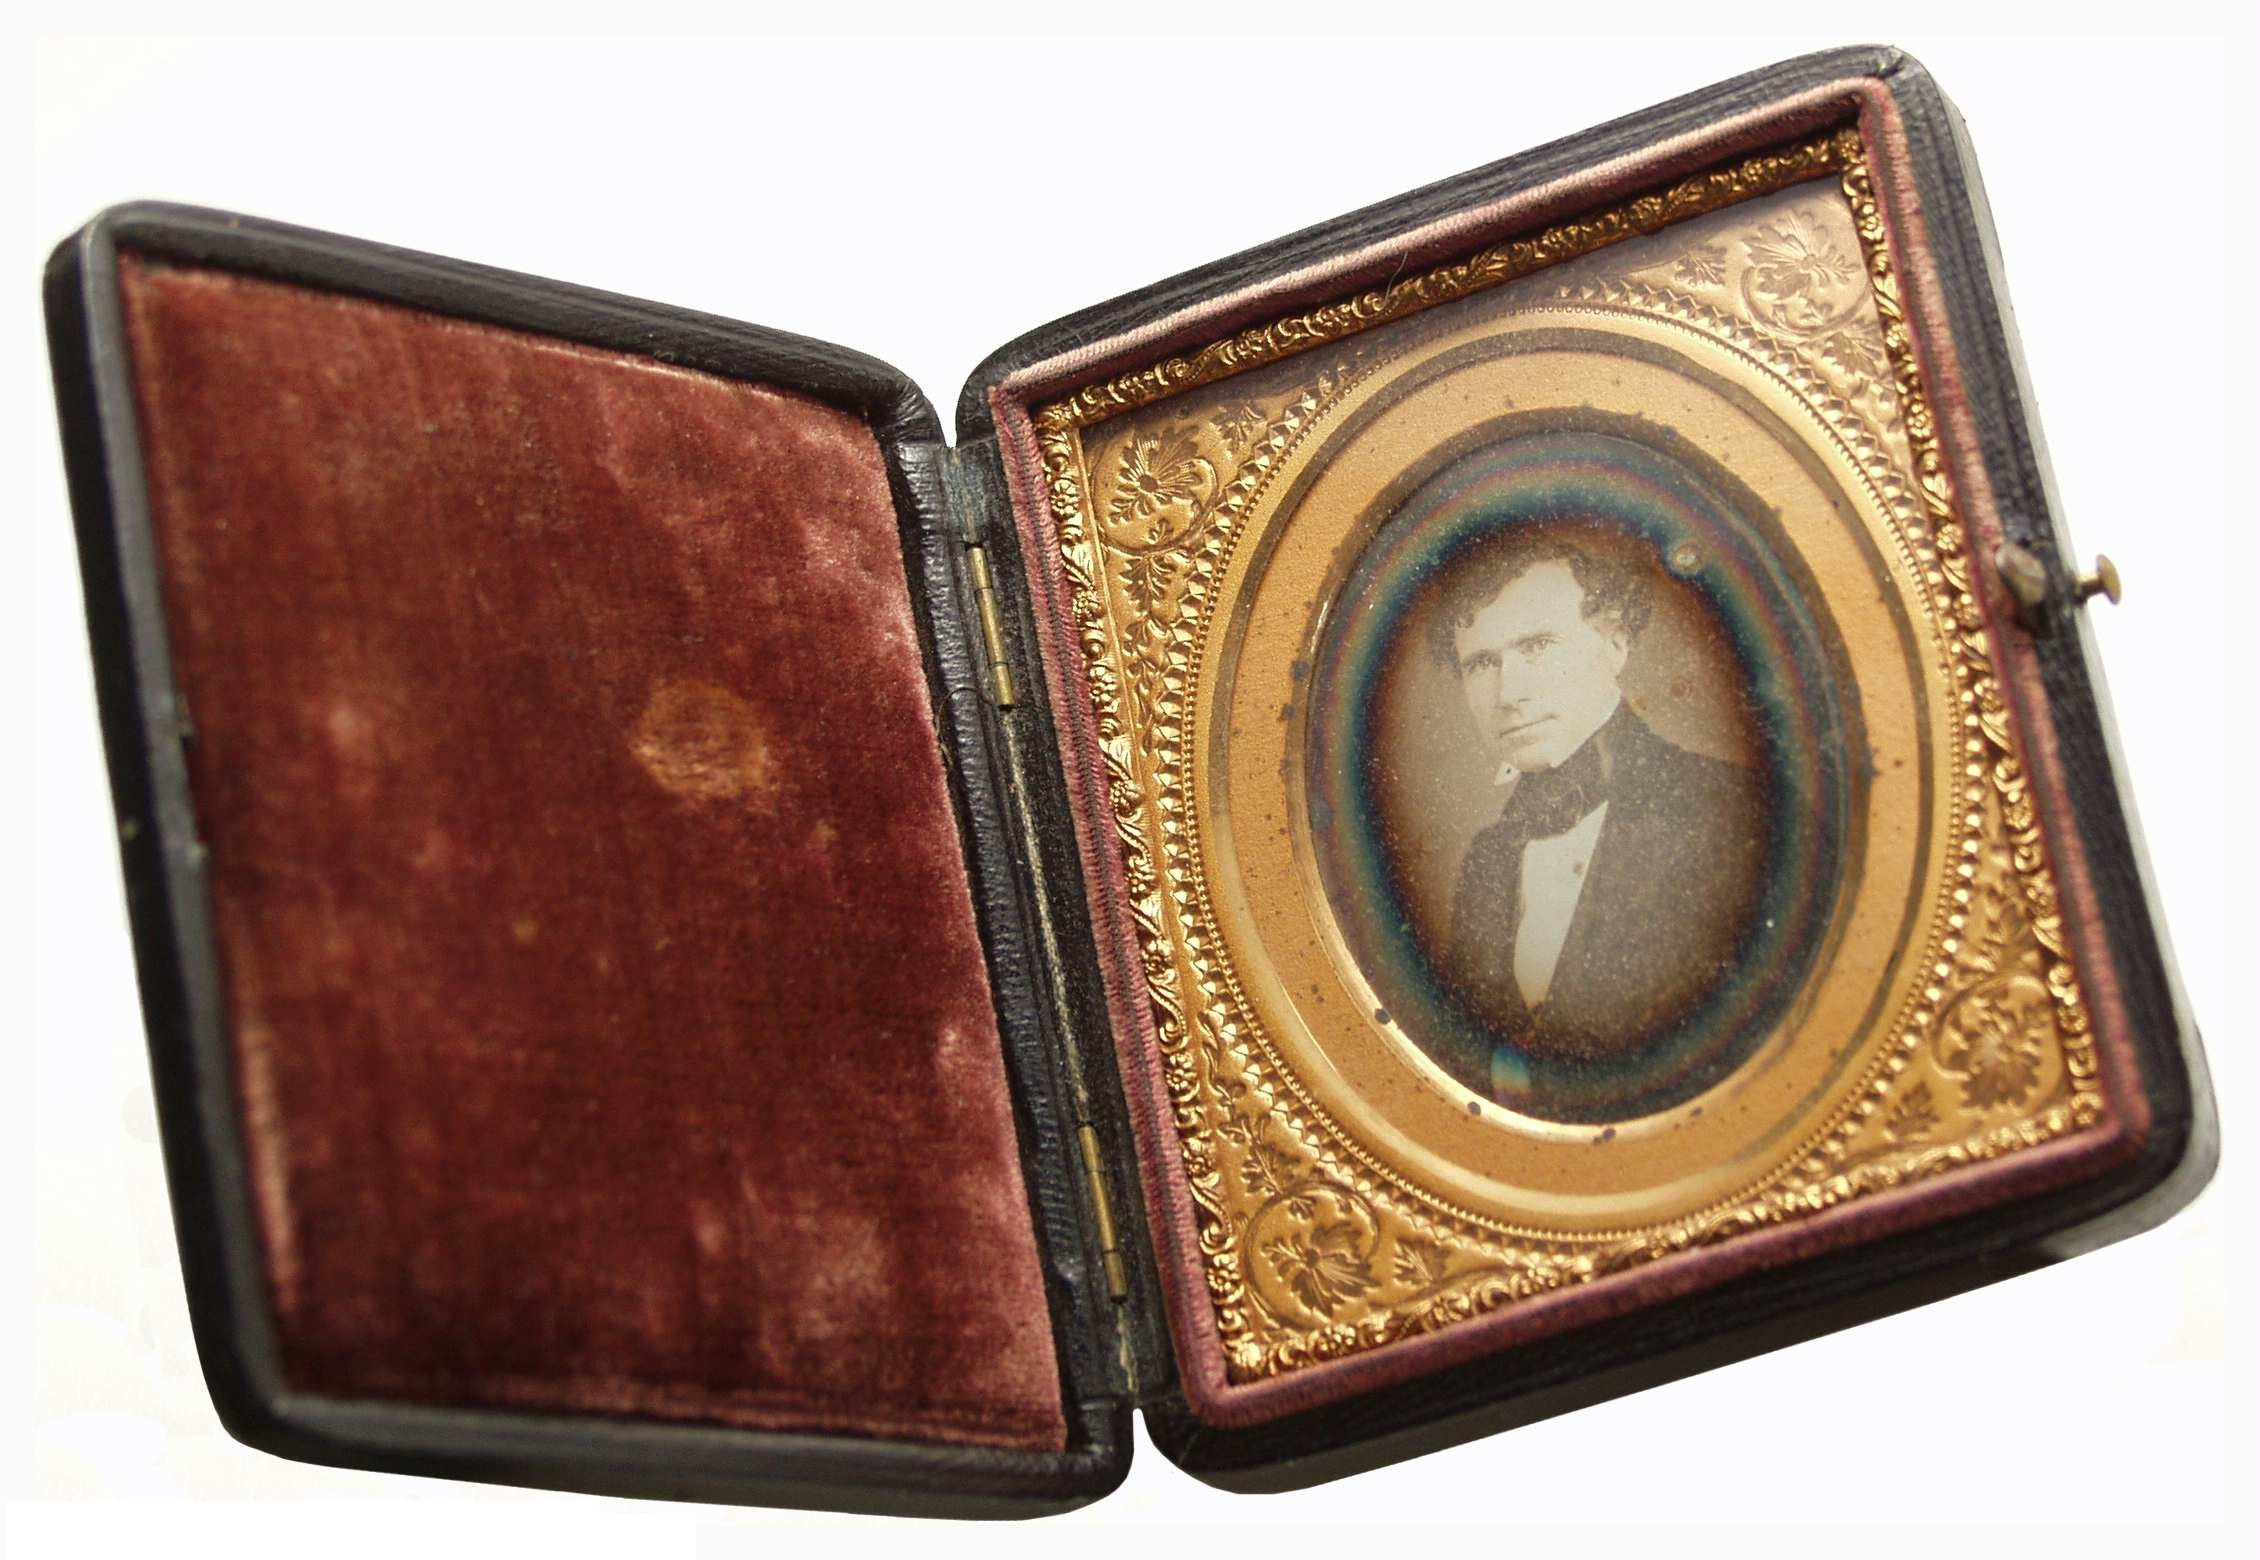 franklin-pierce-daguerreotype